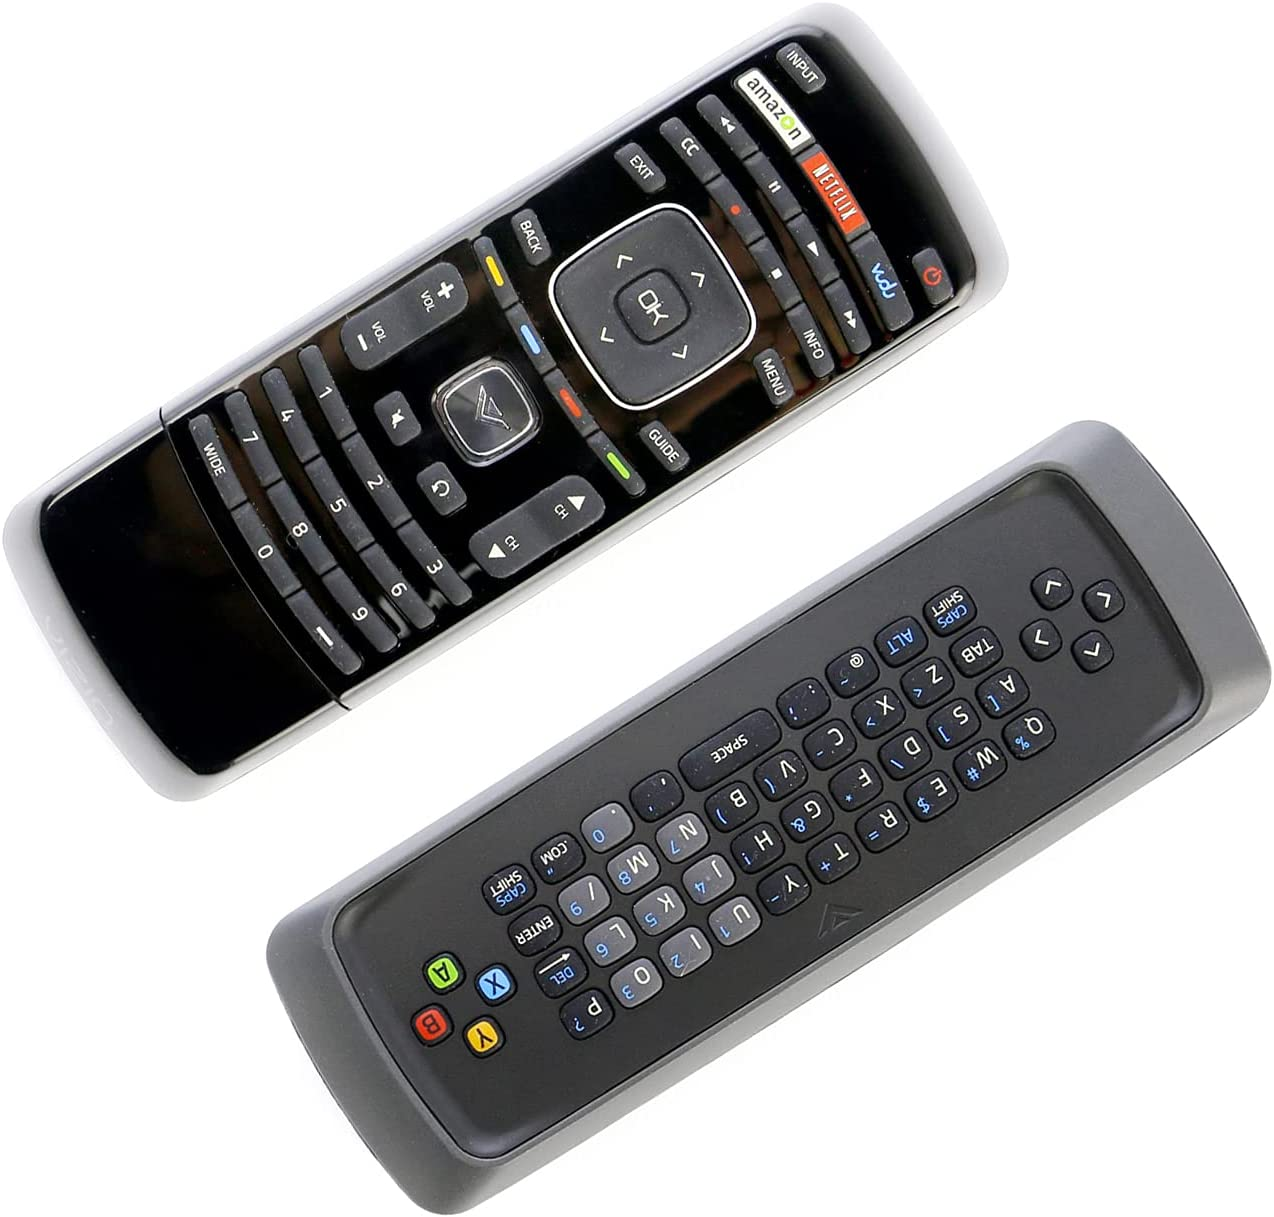 ALLIMITY XRT300 Replaced Remote Compatible with VIZIO HDTV E320FI-B0 VT3D650SV D500I-B1 M421D-A2 M471D-A2 E650i-A0 E700i-A0 E320I-A2 E320I-B0 E650I-B2 M322I-B2 M422I-B2 M492I-B2 M502I-B2 M552I-B2